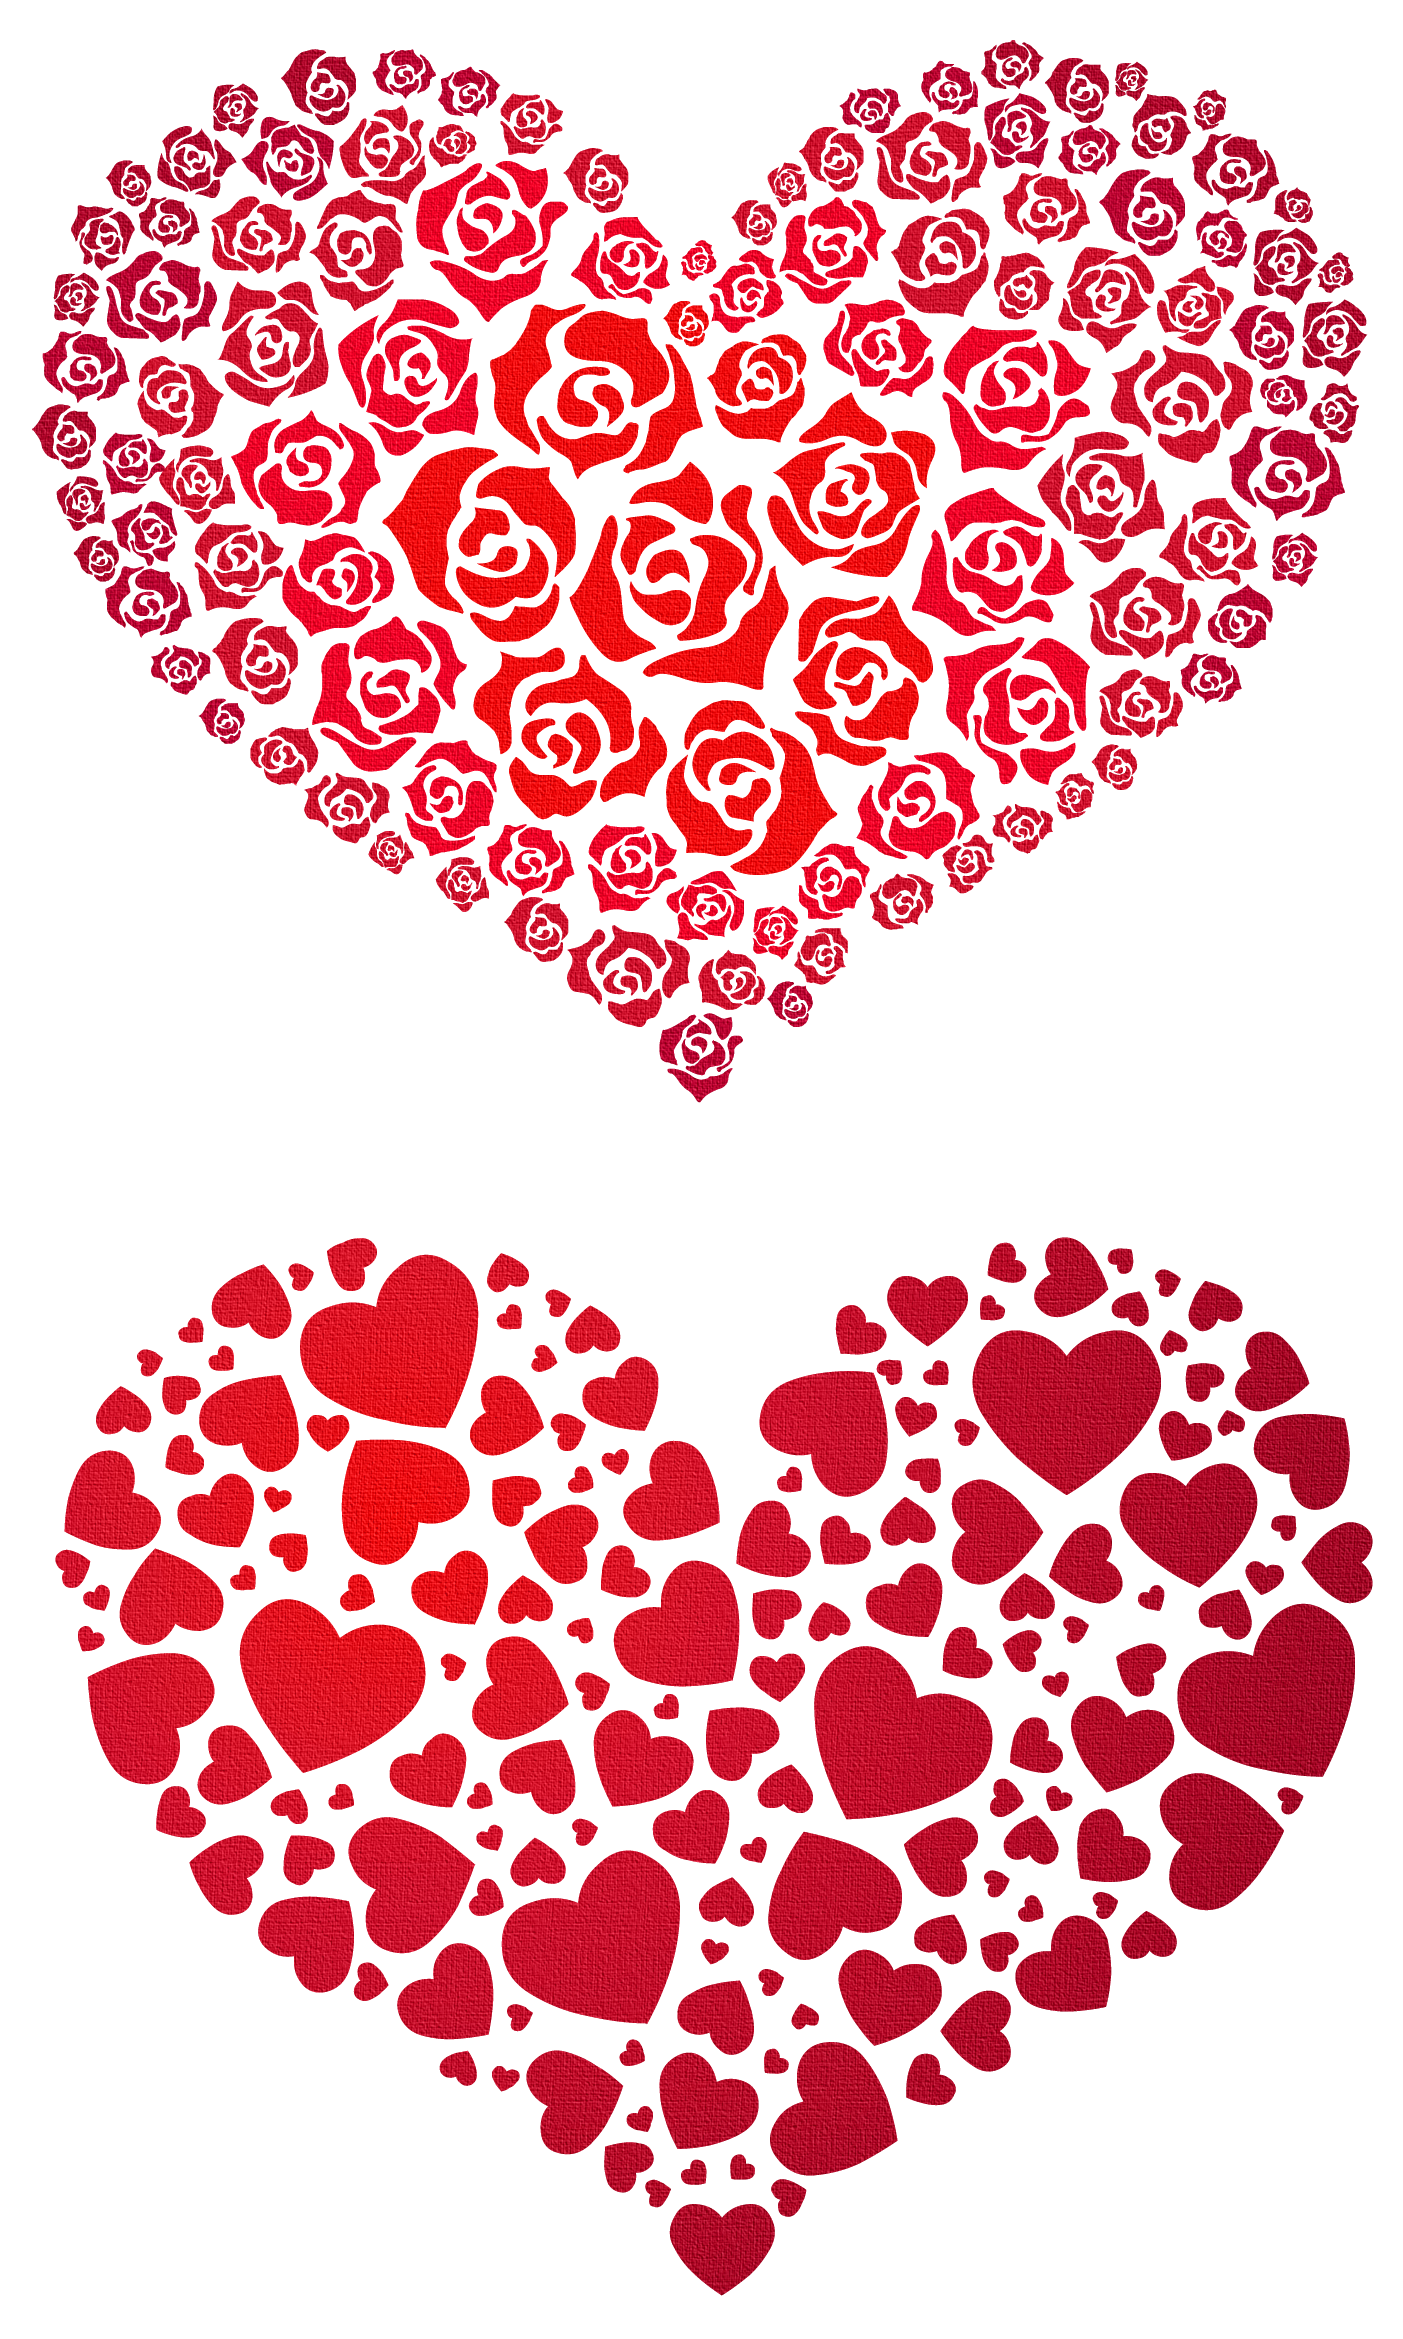 Valentine hearts png. Clipart gallery yopriceville high